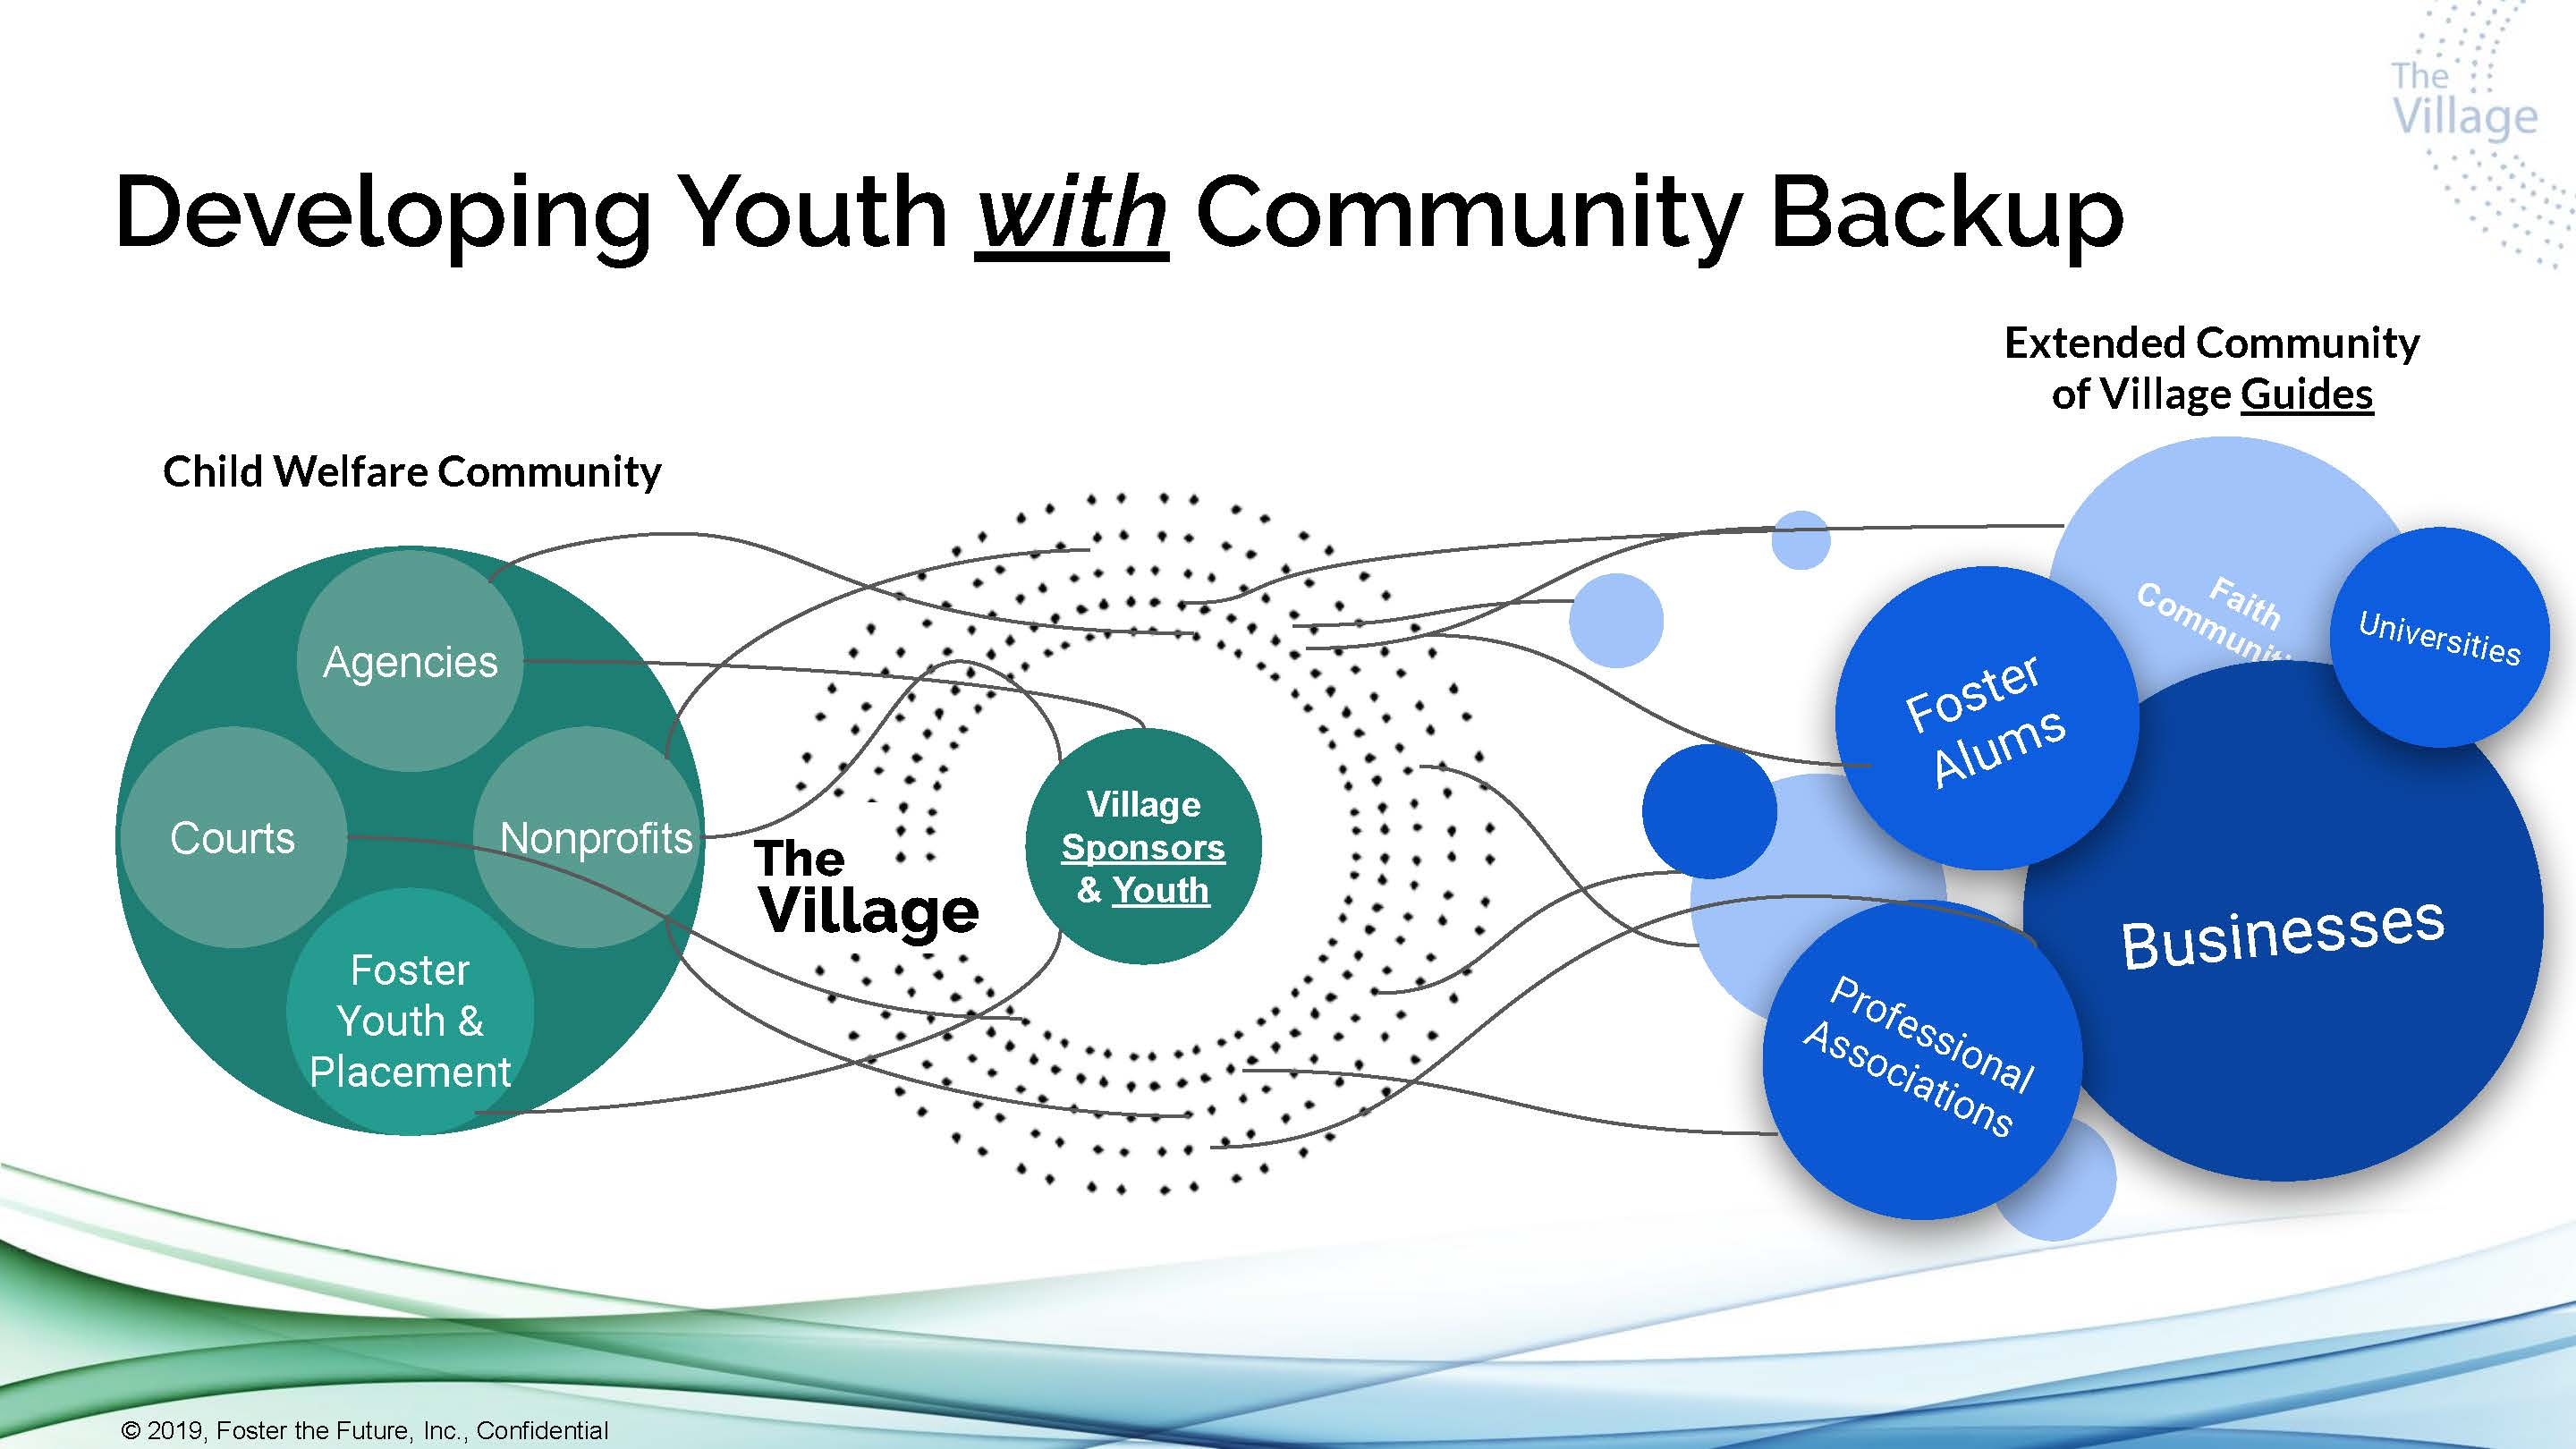 Connecting foster youth with community is what The Caring Village is about.